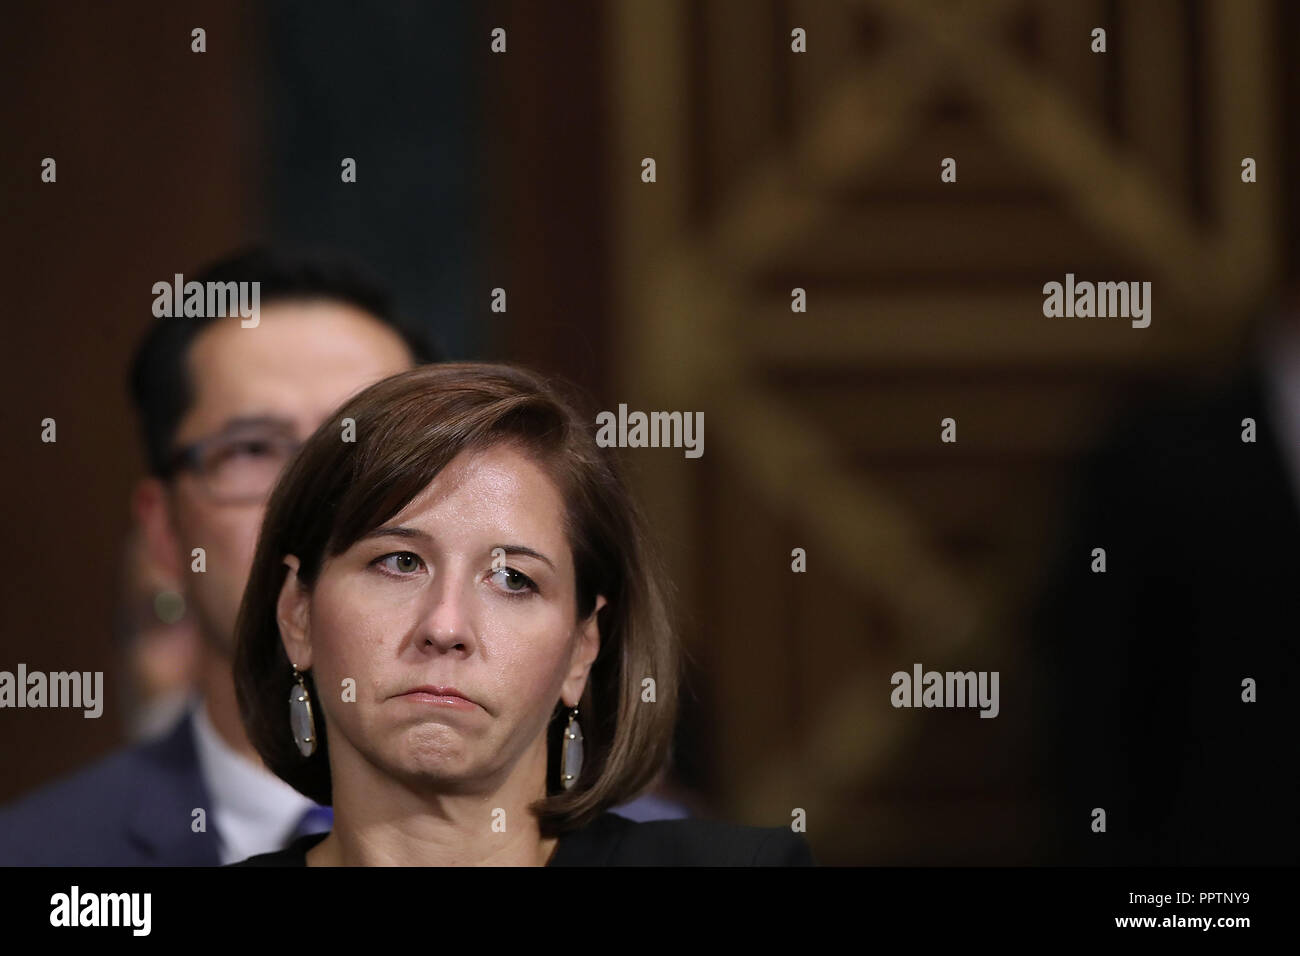 Washington, DC, USA. 27th Sep, 2018. Ashley Kavanaugh listens to her husband, Judge Brett Kavanaugh testify before the Senate Judiciary Committee during his Supreme Court confirmation hearing in the Dirksen Senate Office Building on Capitol Hill September 27, 2018 in Washington, DC.  (Photo by Win McNamee/Getty Images) Credit: ZUMA/Alamy Live News - Stock Image